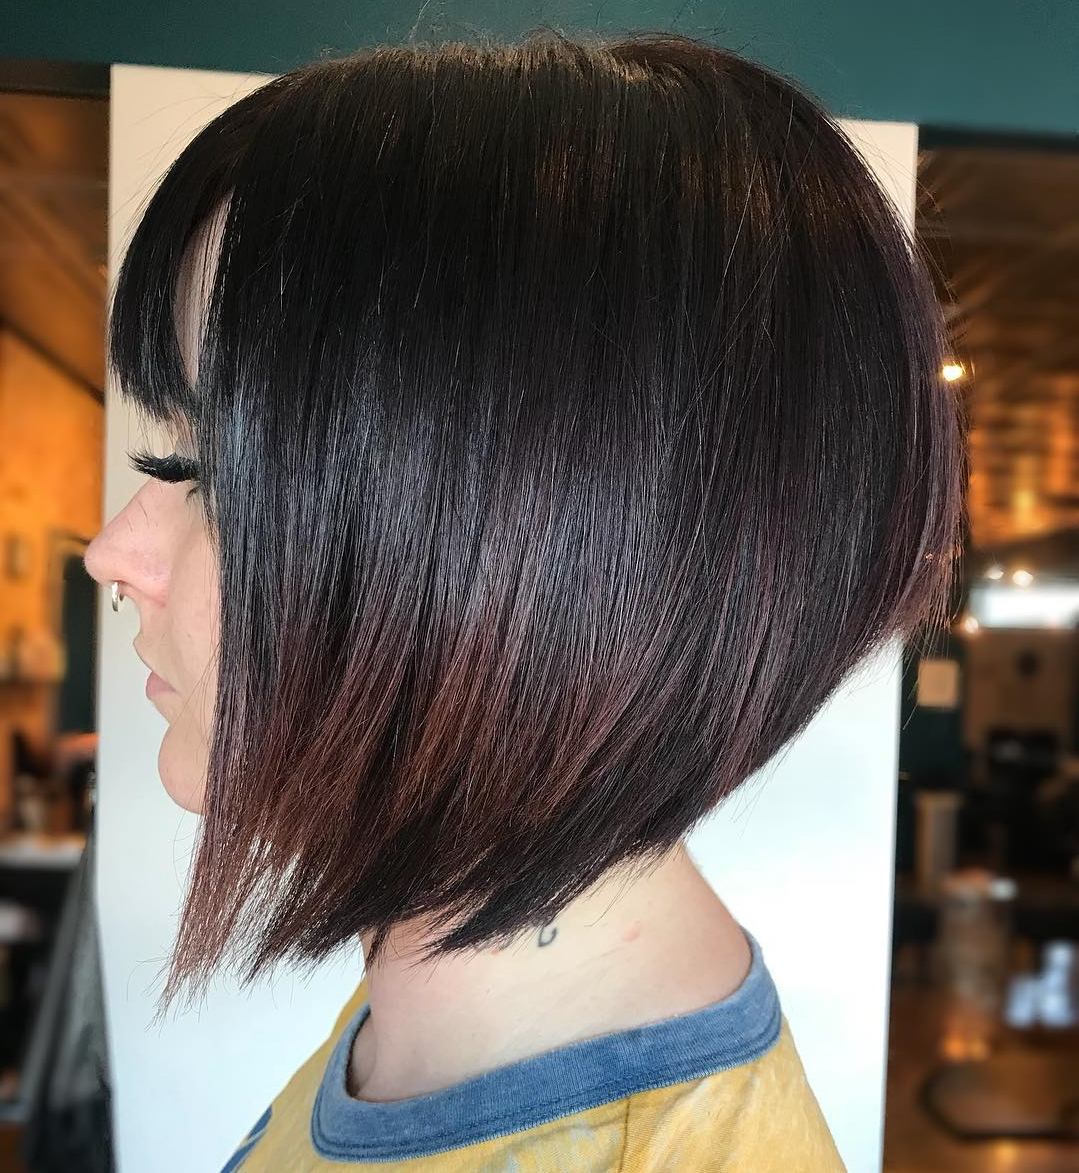 45 Short Hairstyles For Fine Hair To Rock In 2019 Intended For Most Up To Date Chestnut Brown Choppy Lob Hairstyles (View 3 of 20)